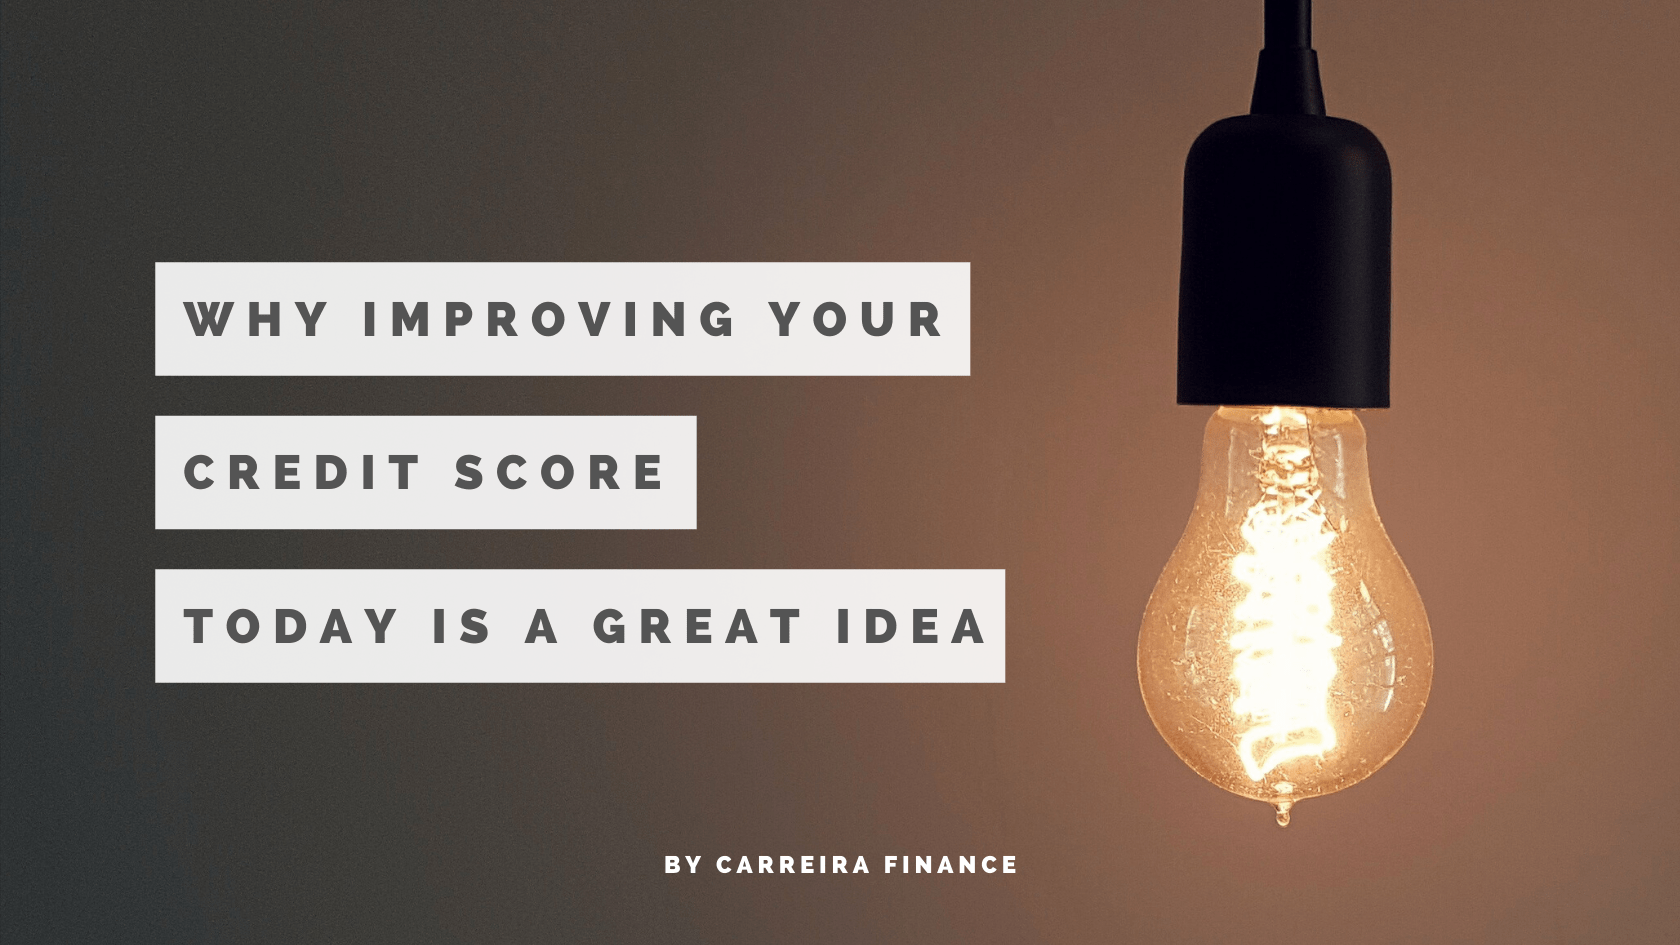 Why Improving Your Credit Score Today Is A Great Idea - Carreira Finance - Financial Coach